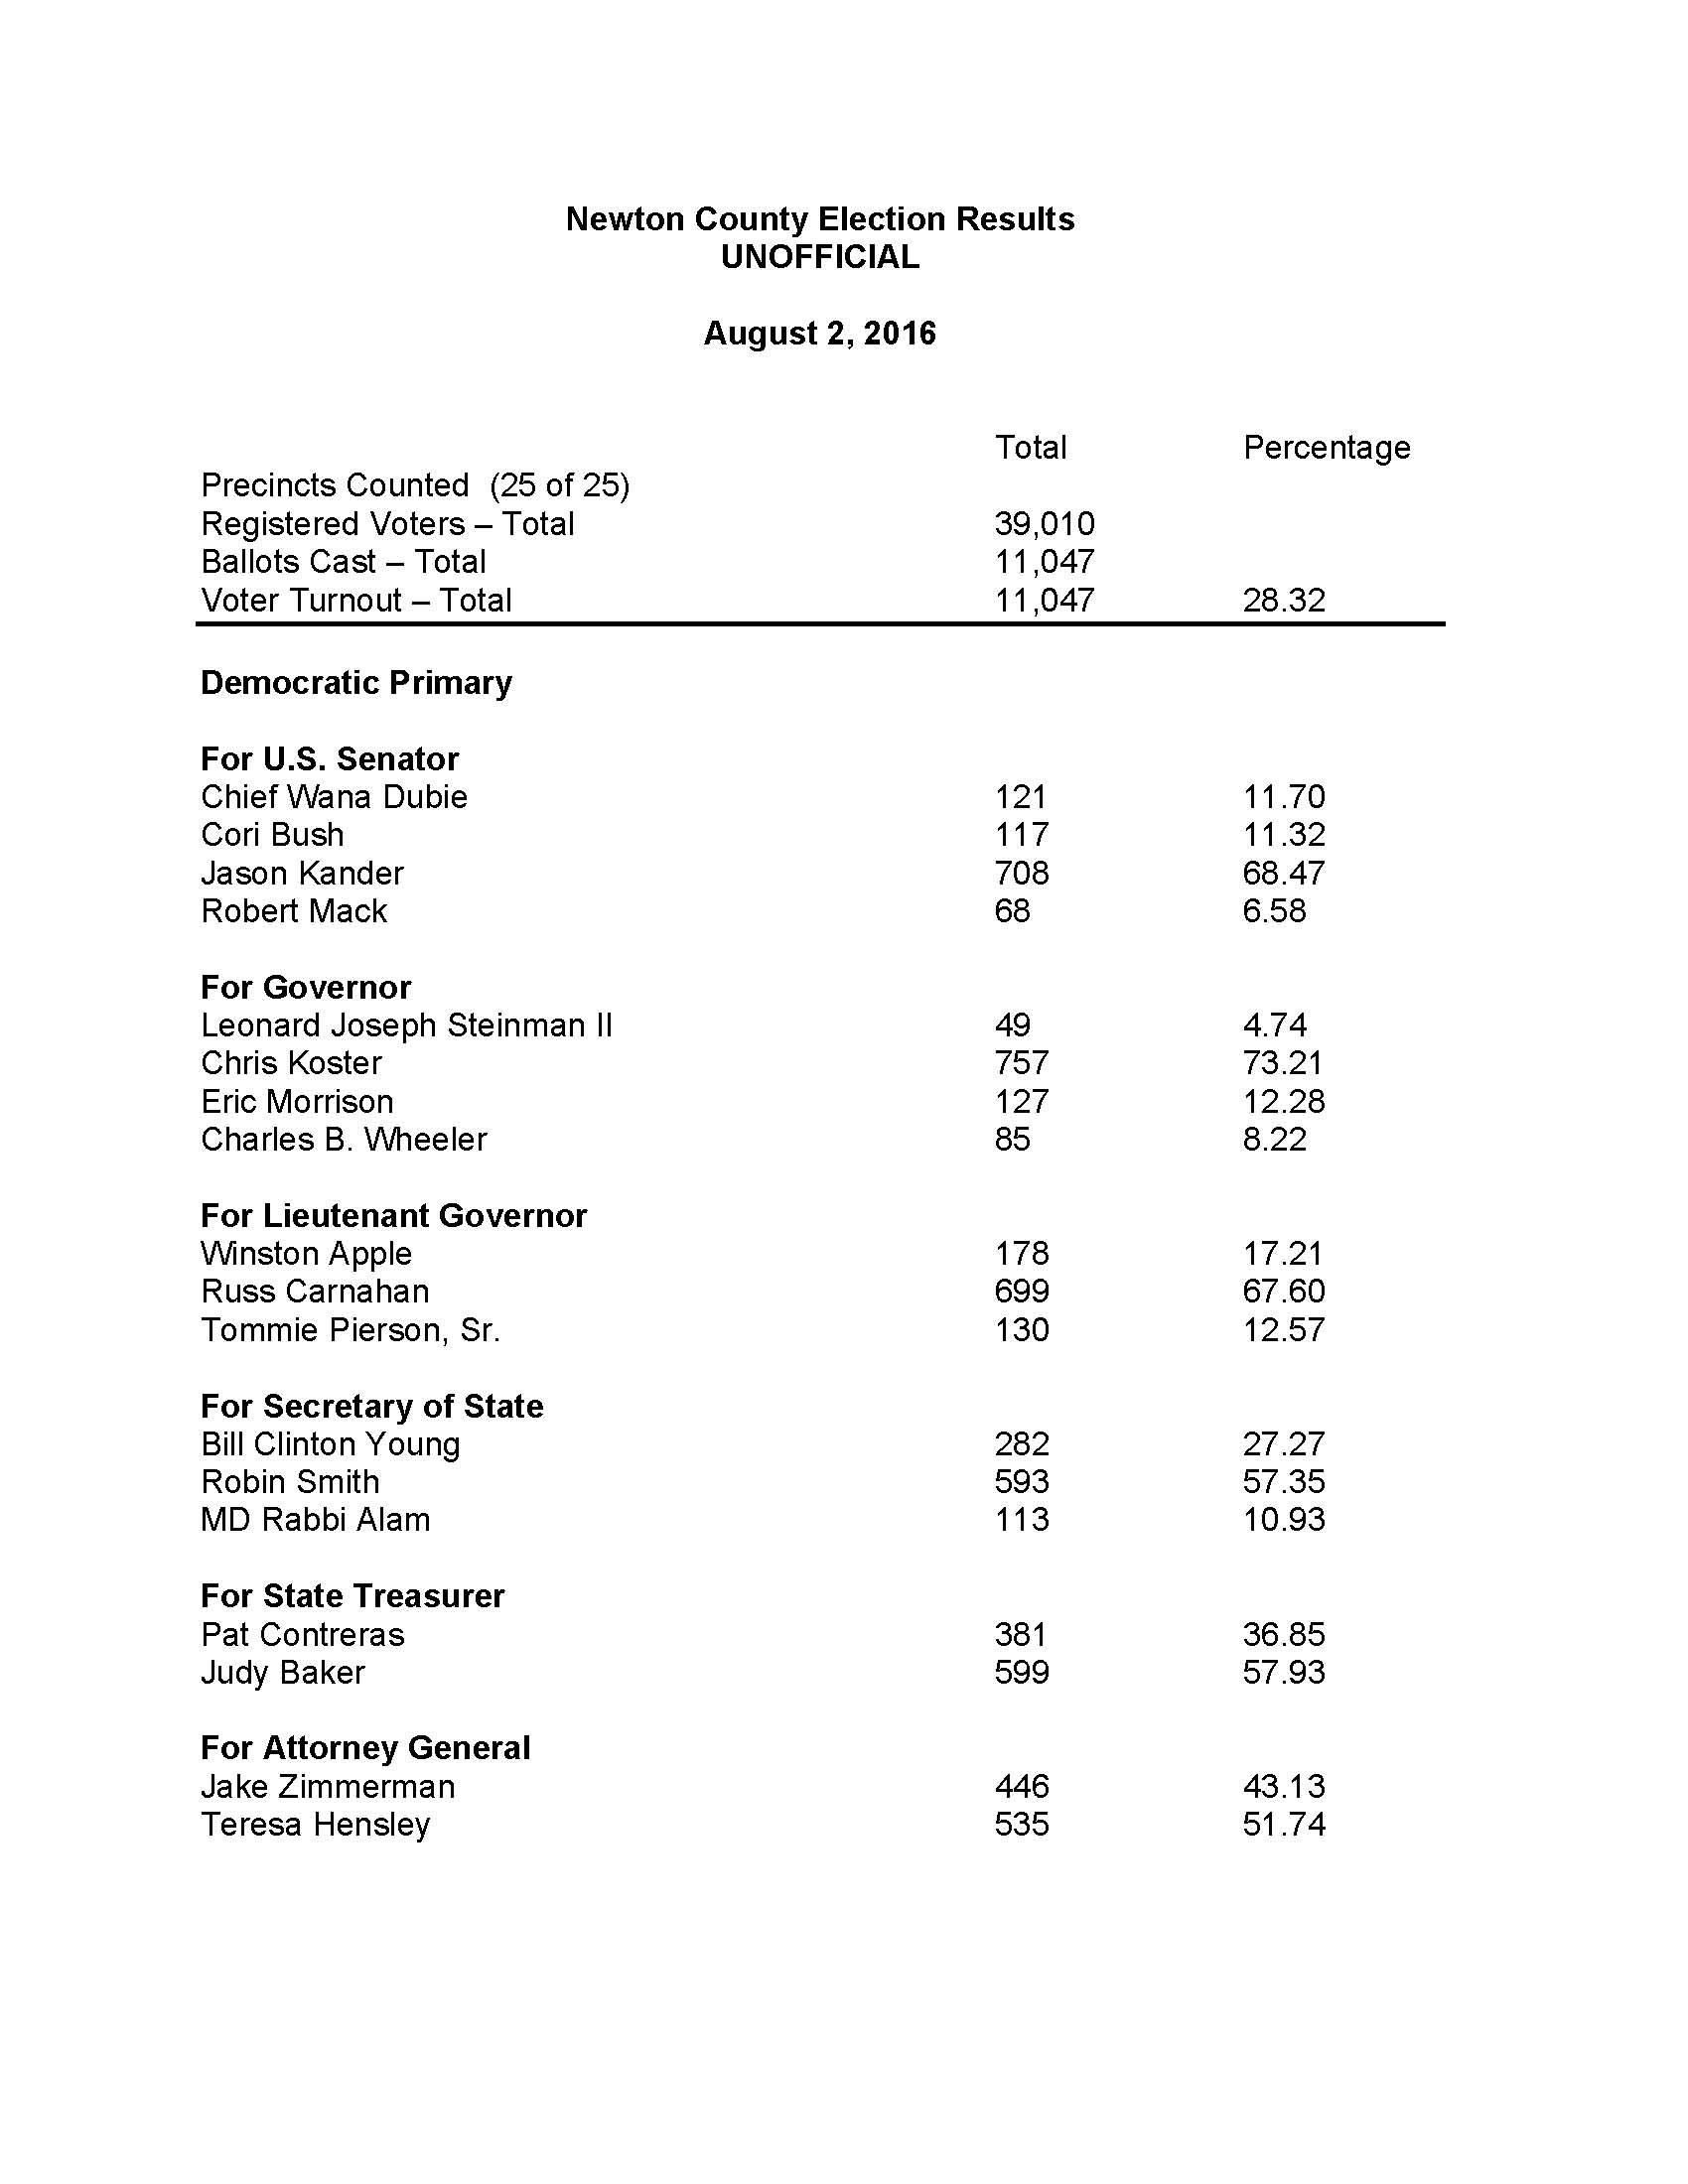 Mississippi newton county newton - August 2 2016 Primary Election Results For Newton County